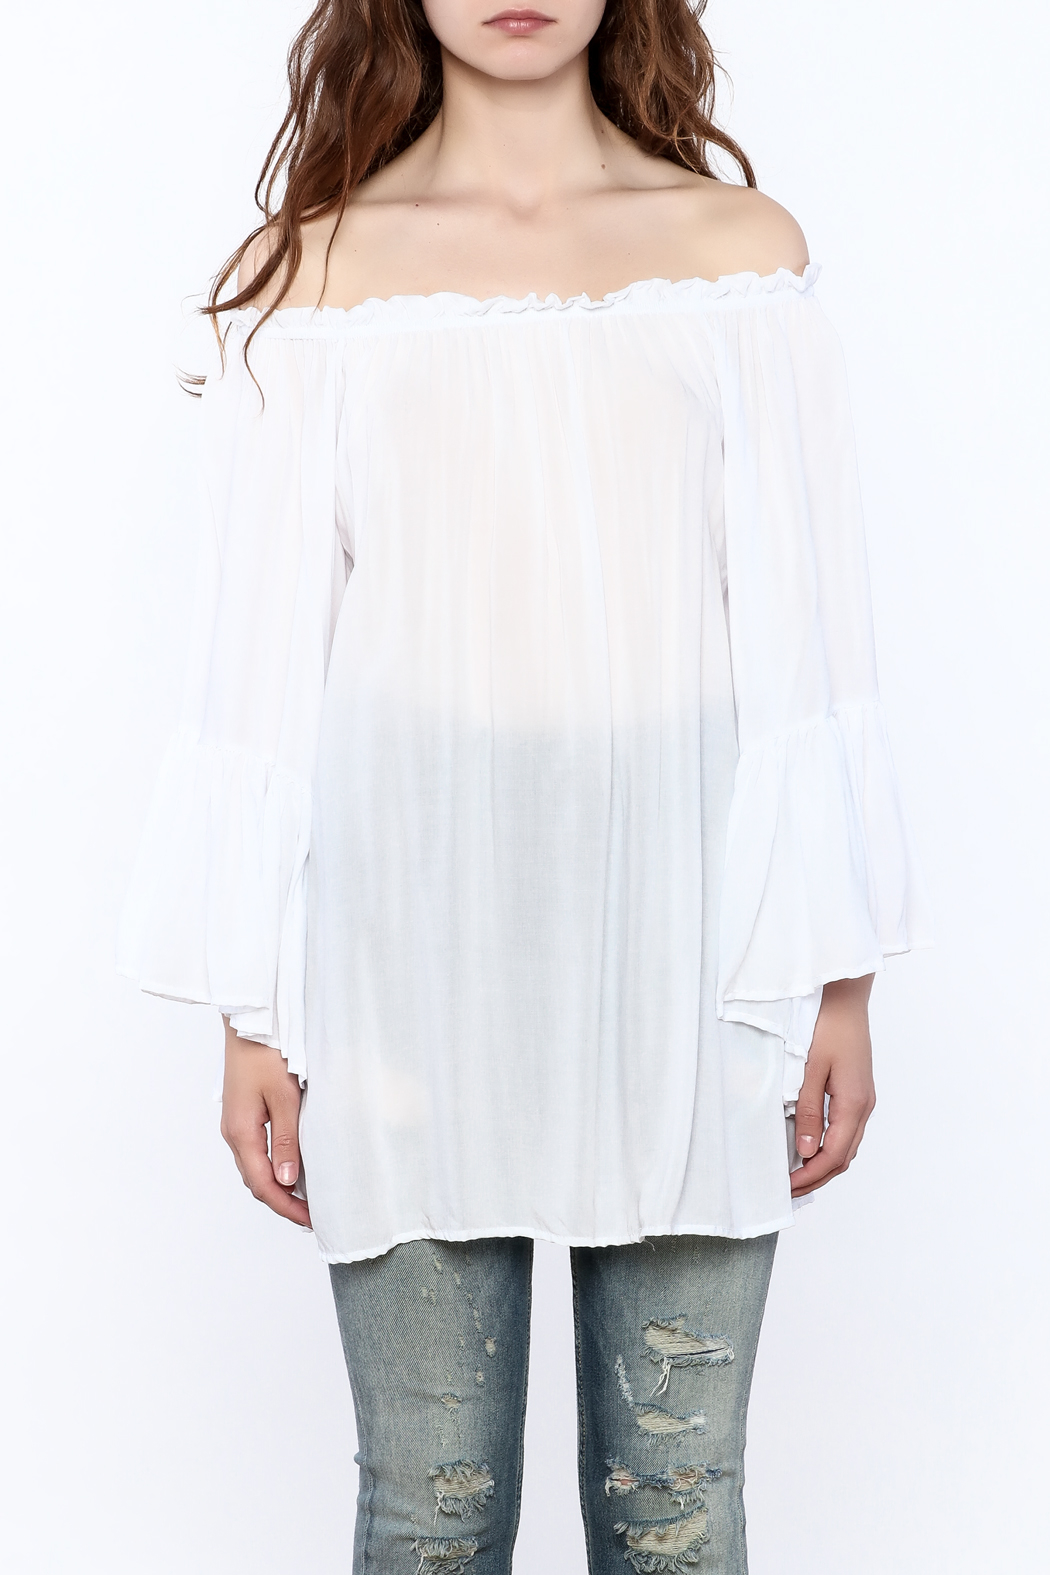 Elan Flowy White Tunic Top - Side Cropped Image